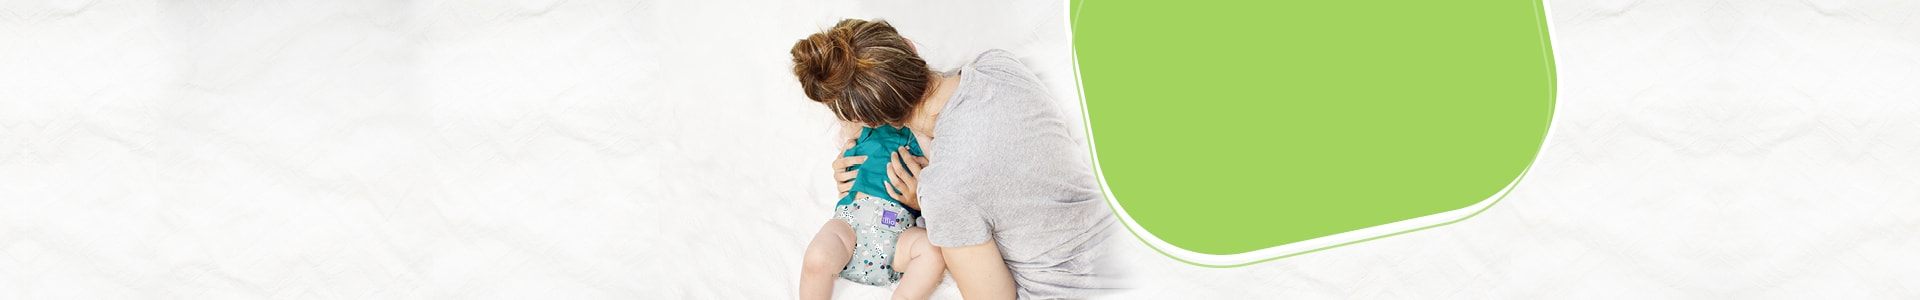 Get started with cloth diapers page banner showing mom with baby